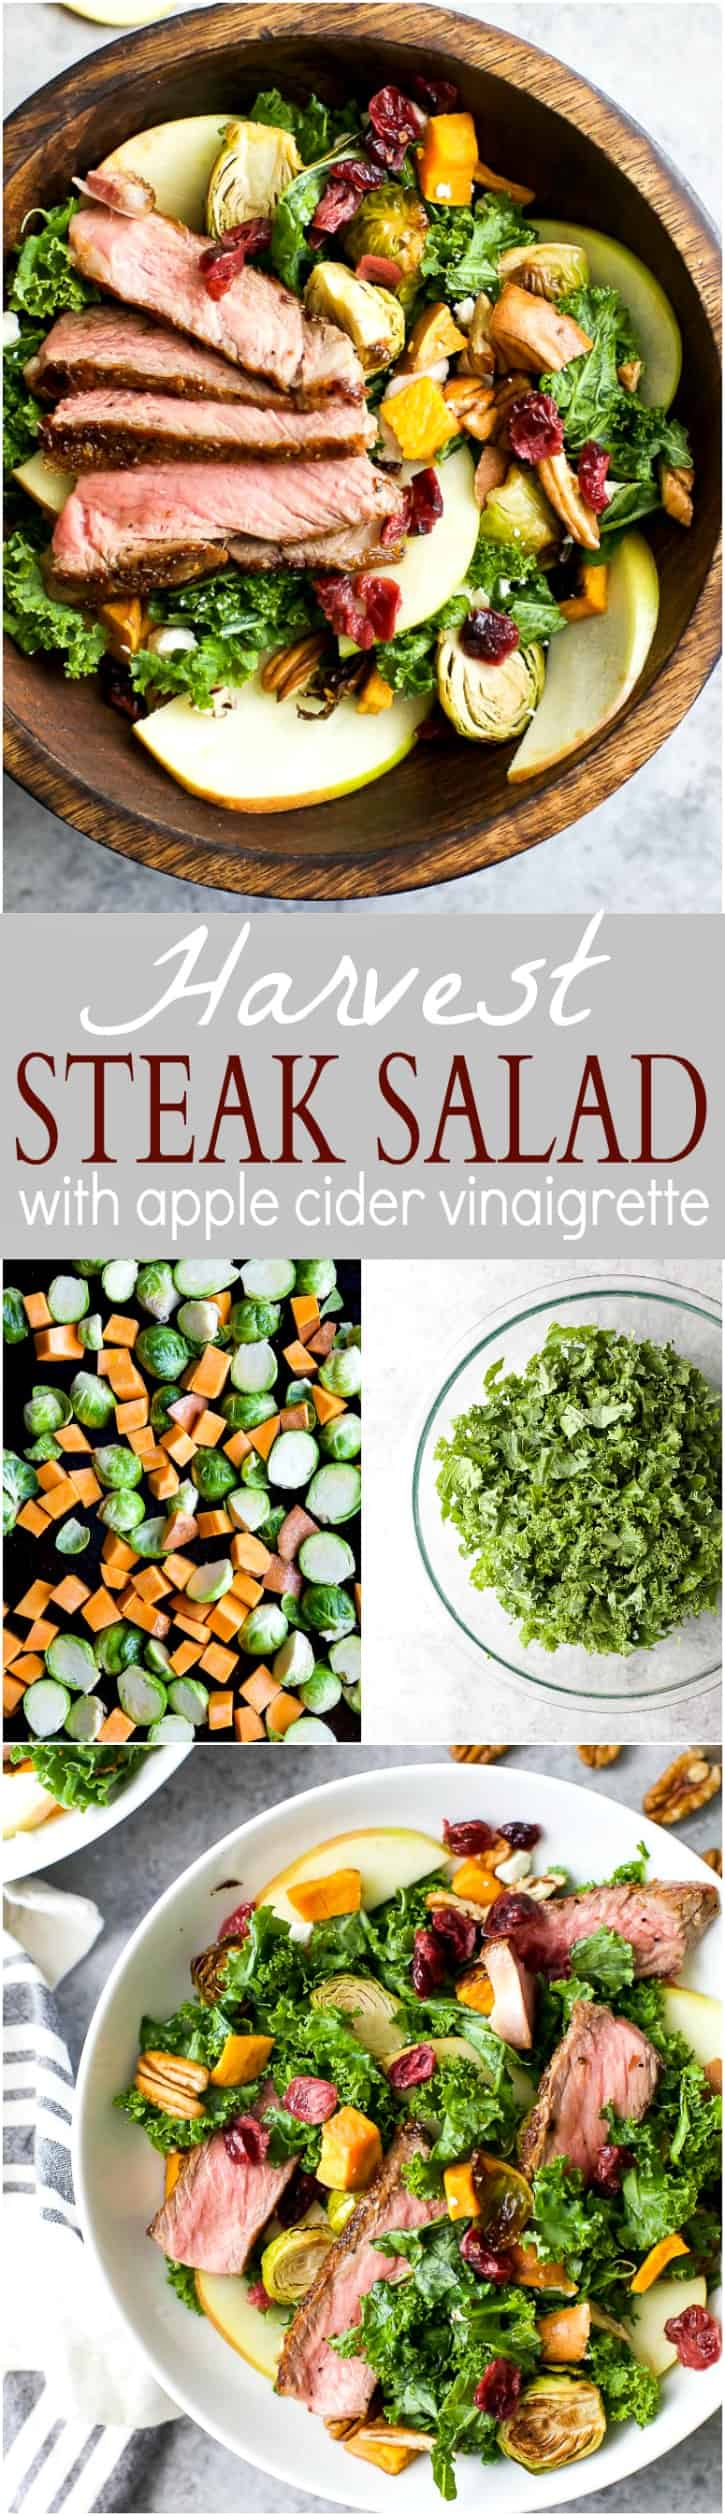 Harvest Steak Salad loaded with autumn vegetables and topped with a homemade Apple Cider Vinaigrette! This steak salad is the perfect fall inspired dinner your family will love!